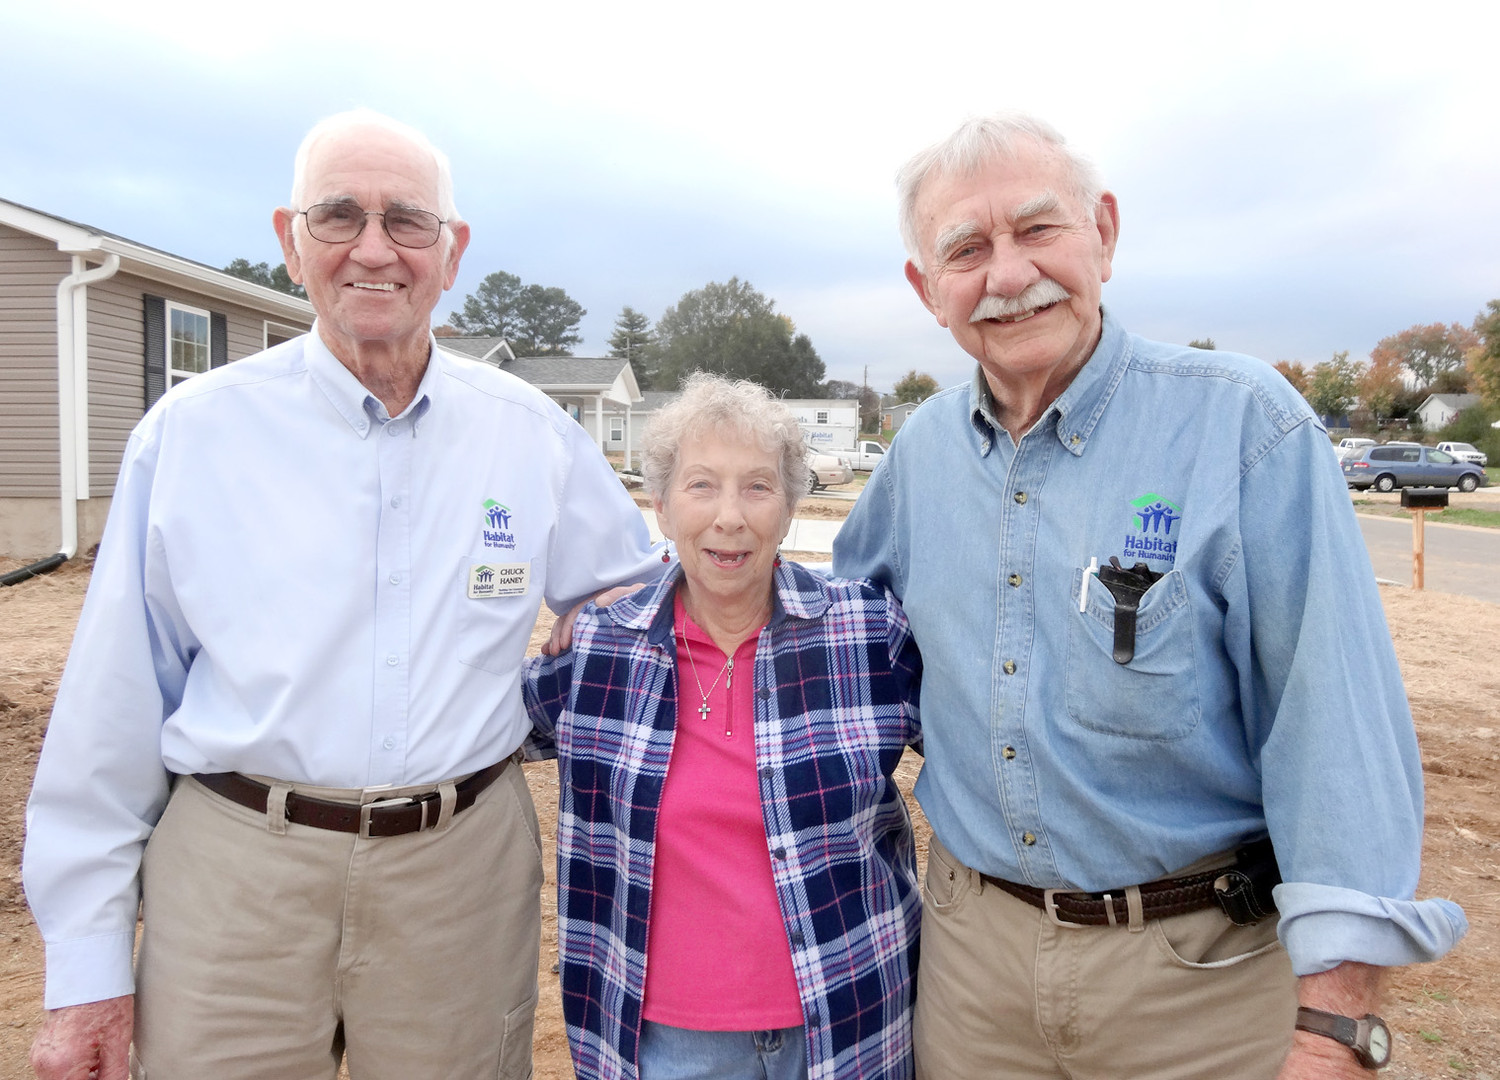 Chuck Haney and Don Rollens were recently honored for their work with Habitat for Humanity of Cleveland. Both have been involved with building homes in the community since the organization began in 1990. From left are Haney, Habitat volunteer Hazel Spain, and Rollens.